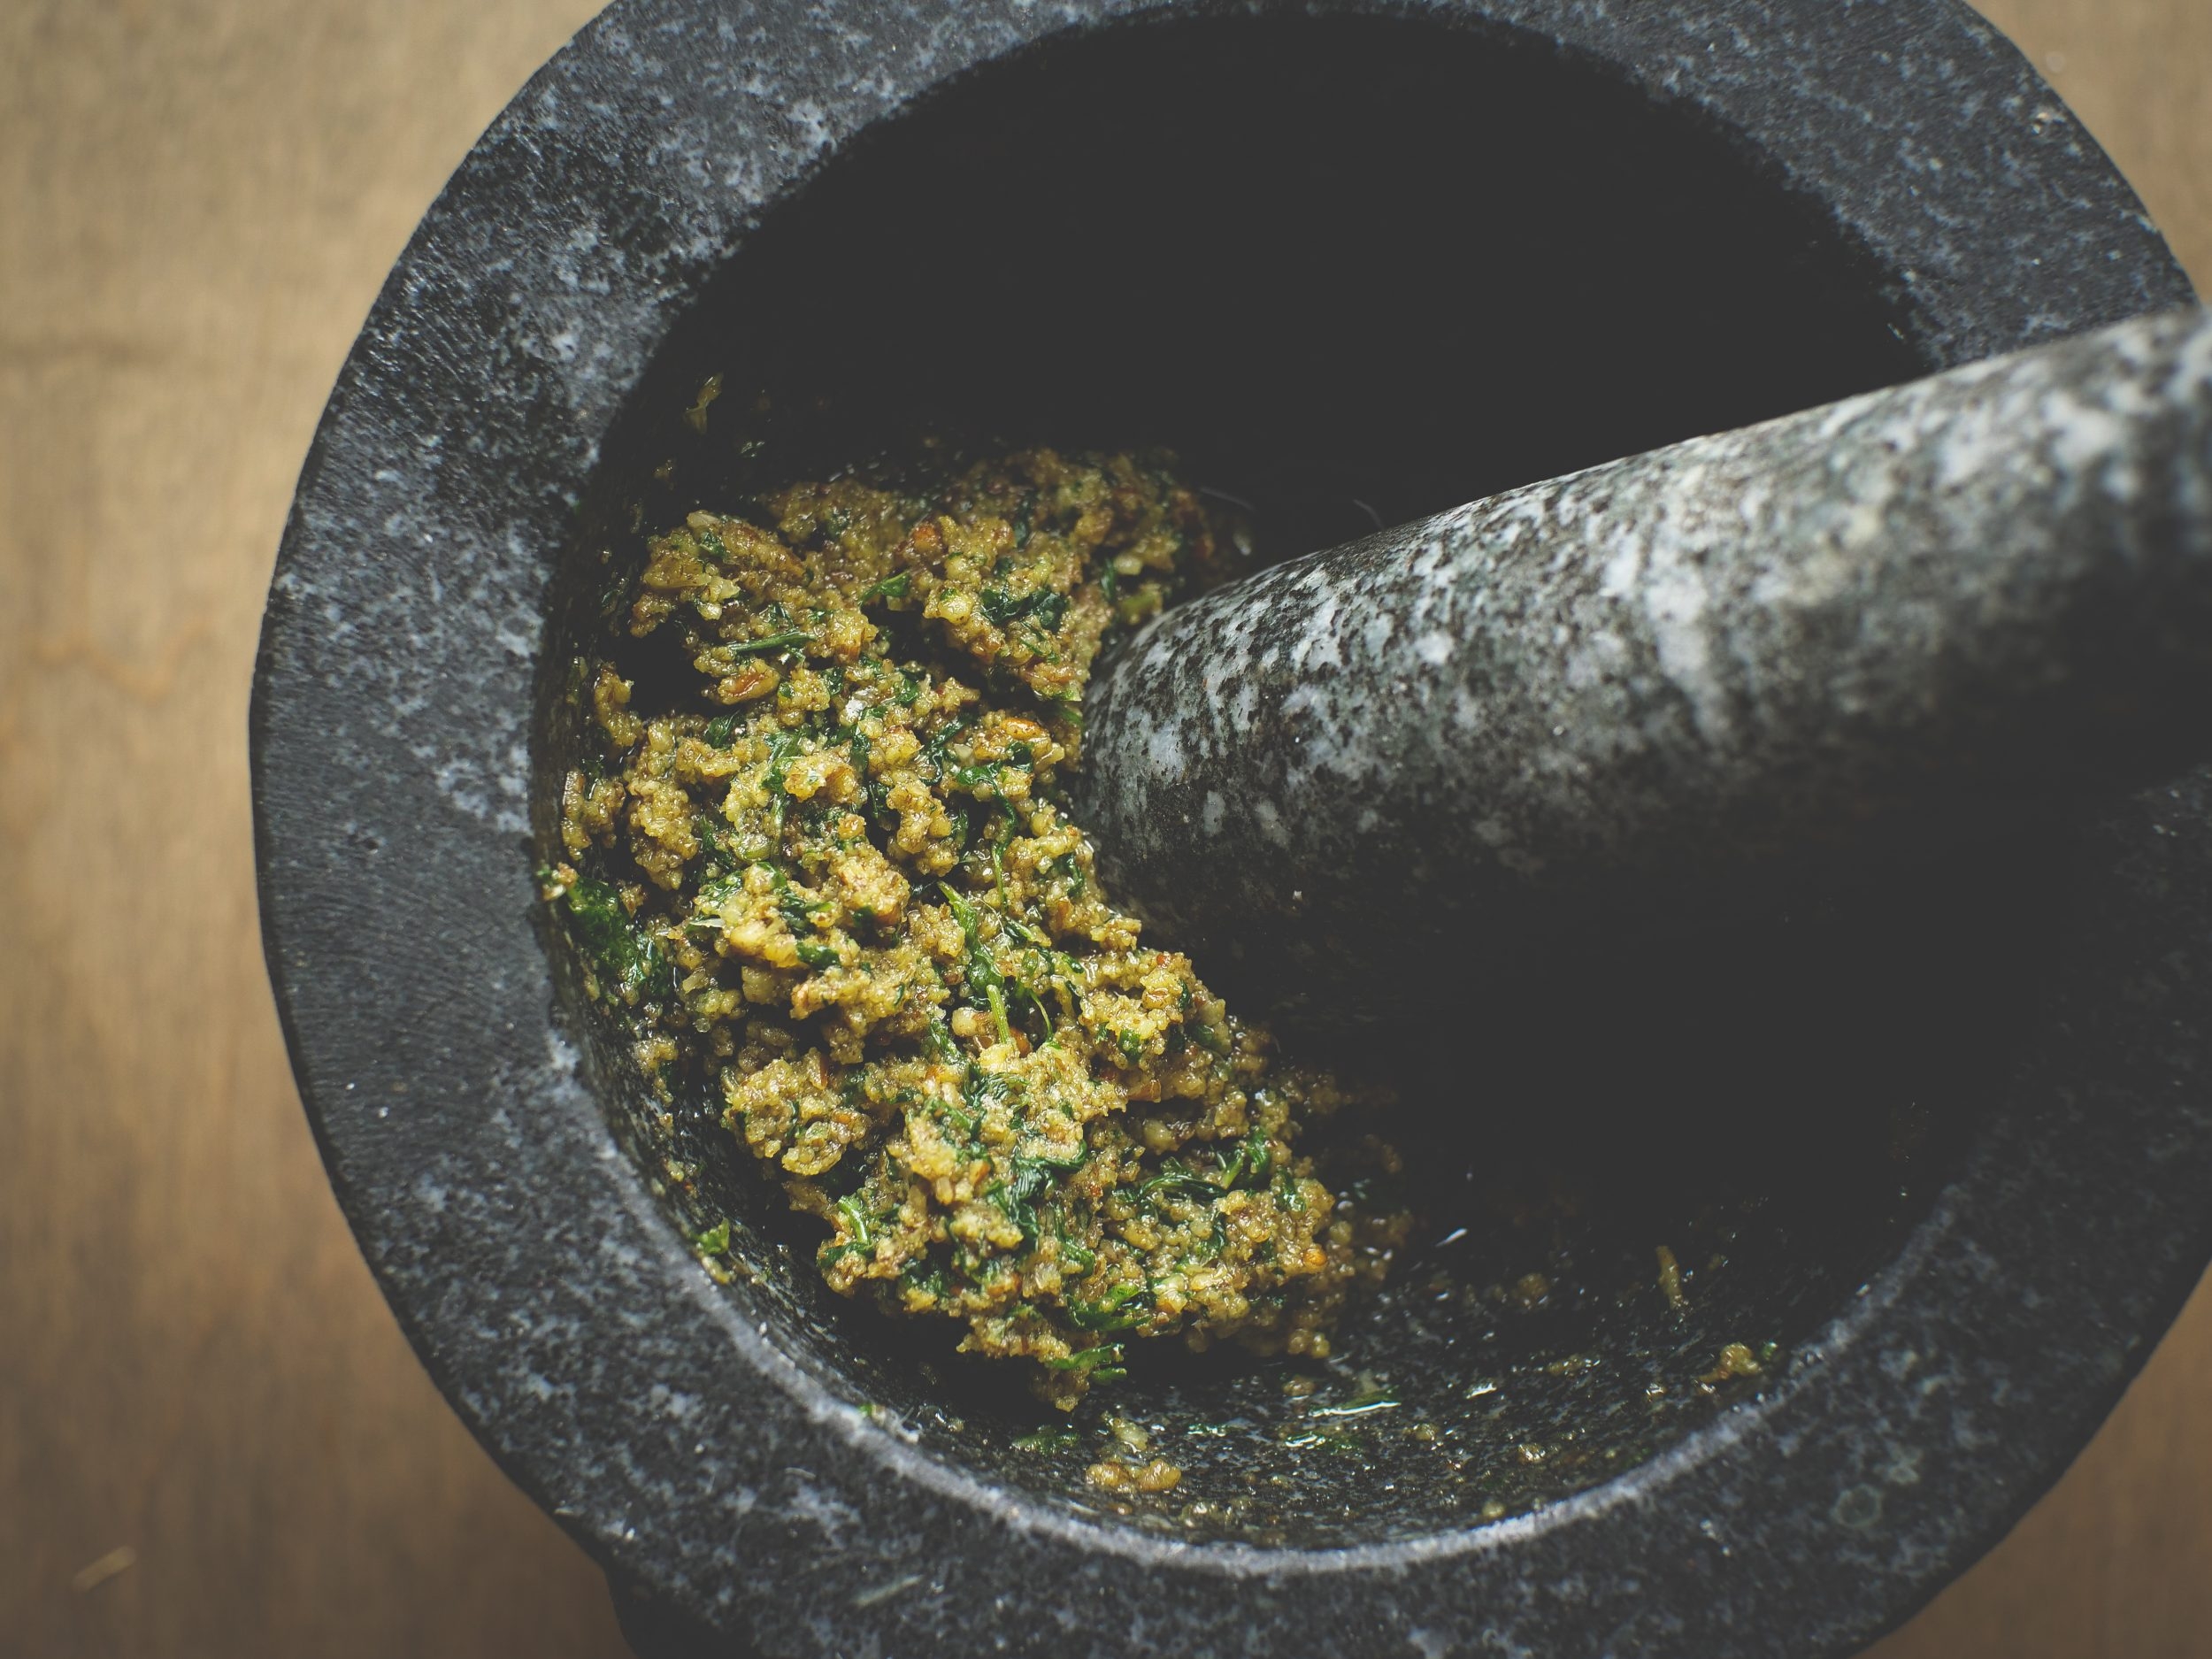 italian basil pesto made in mortar with pestle